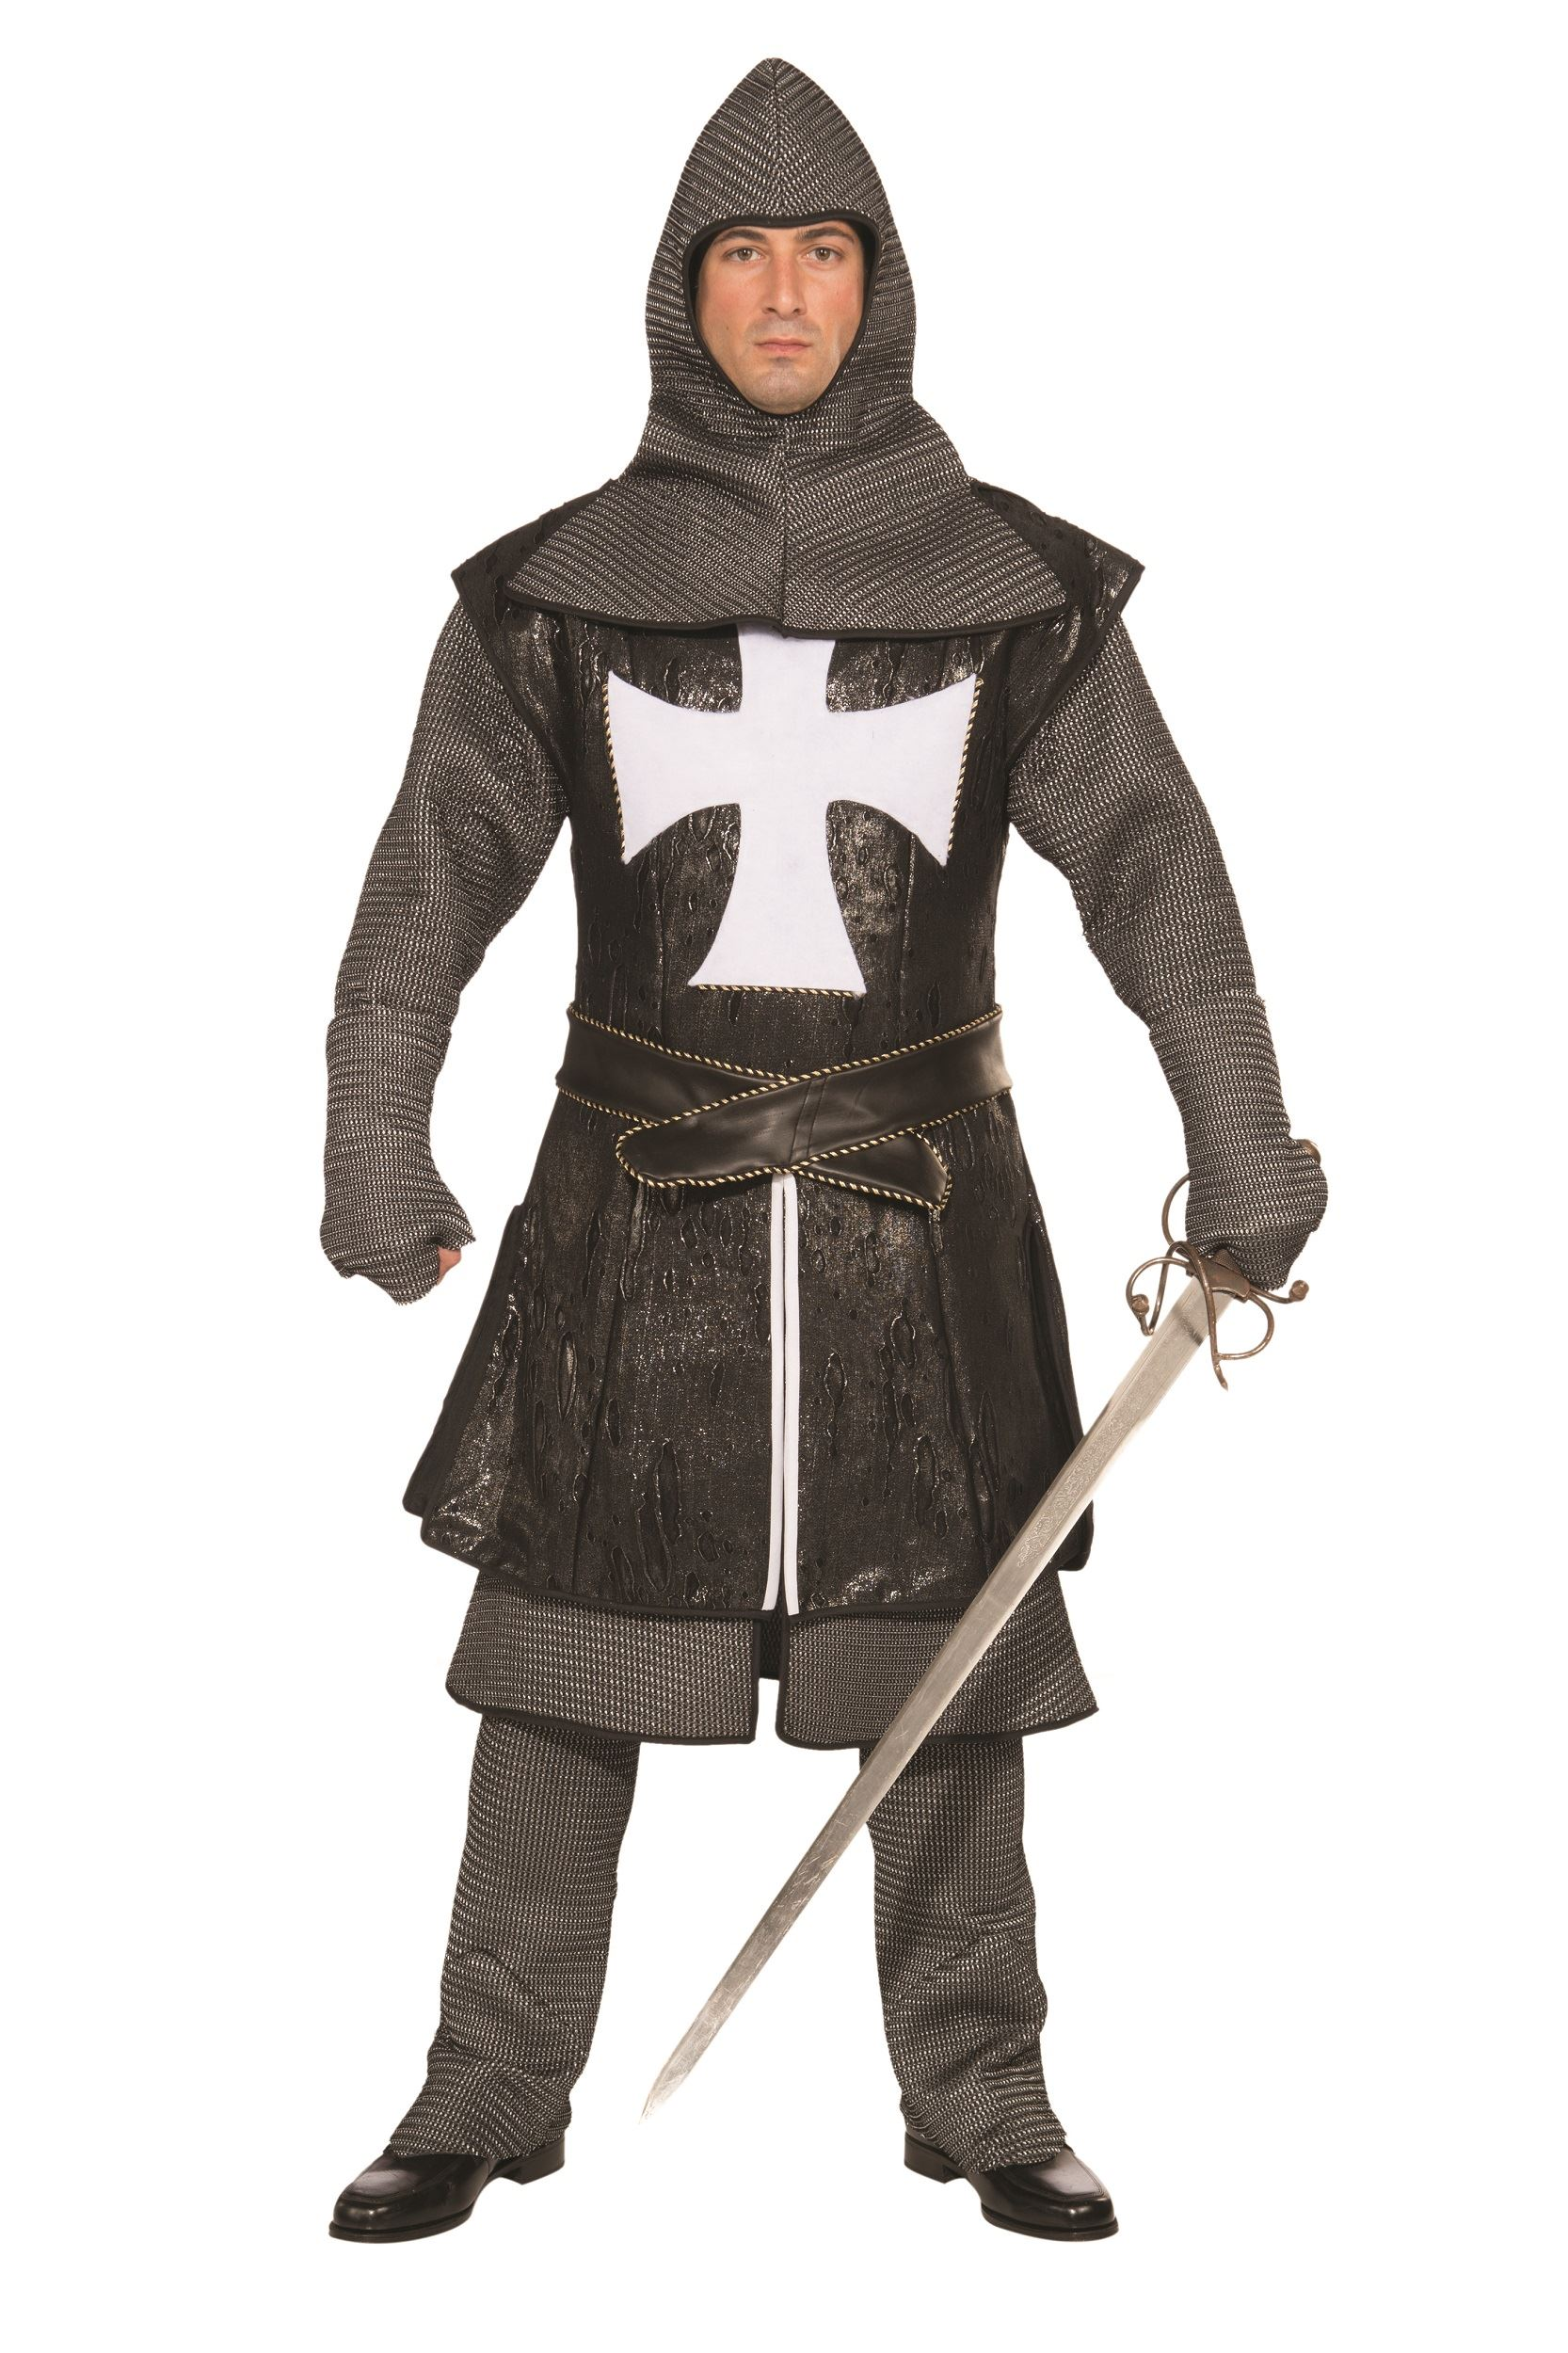 ... Mens Deluxe Costumes; Adult Deluxe Medieval Knight Men Designer  Collection. Click here to view Large Image